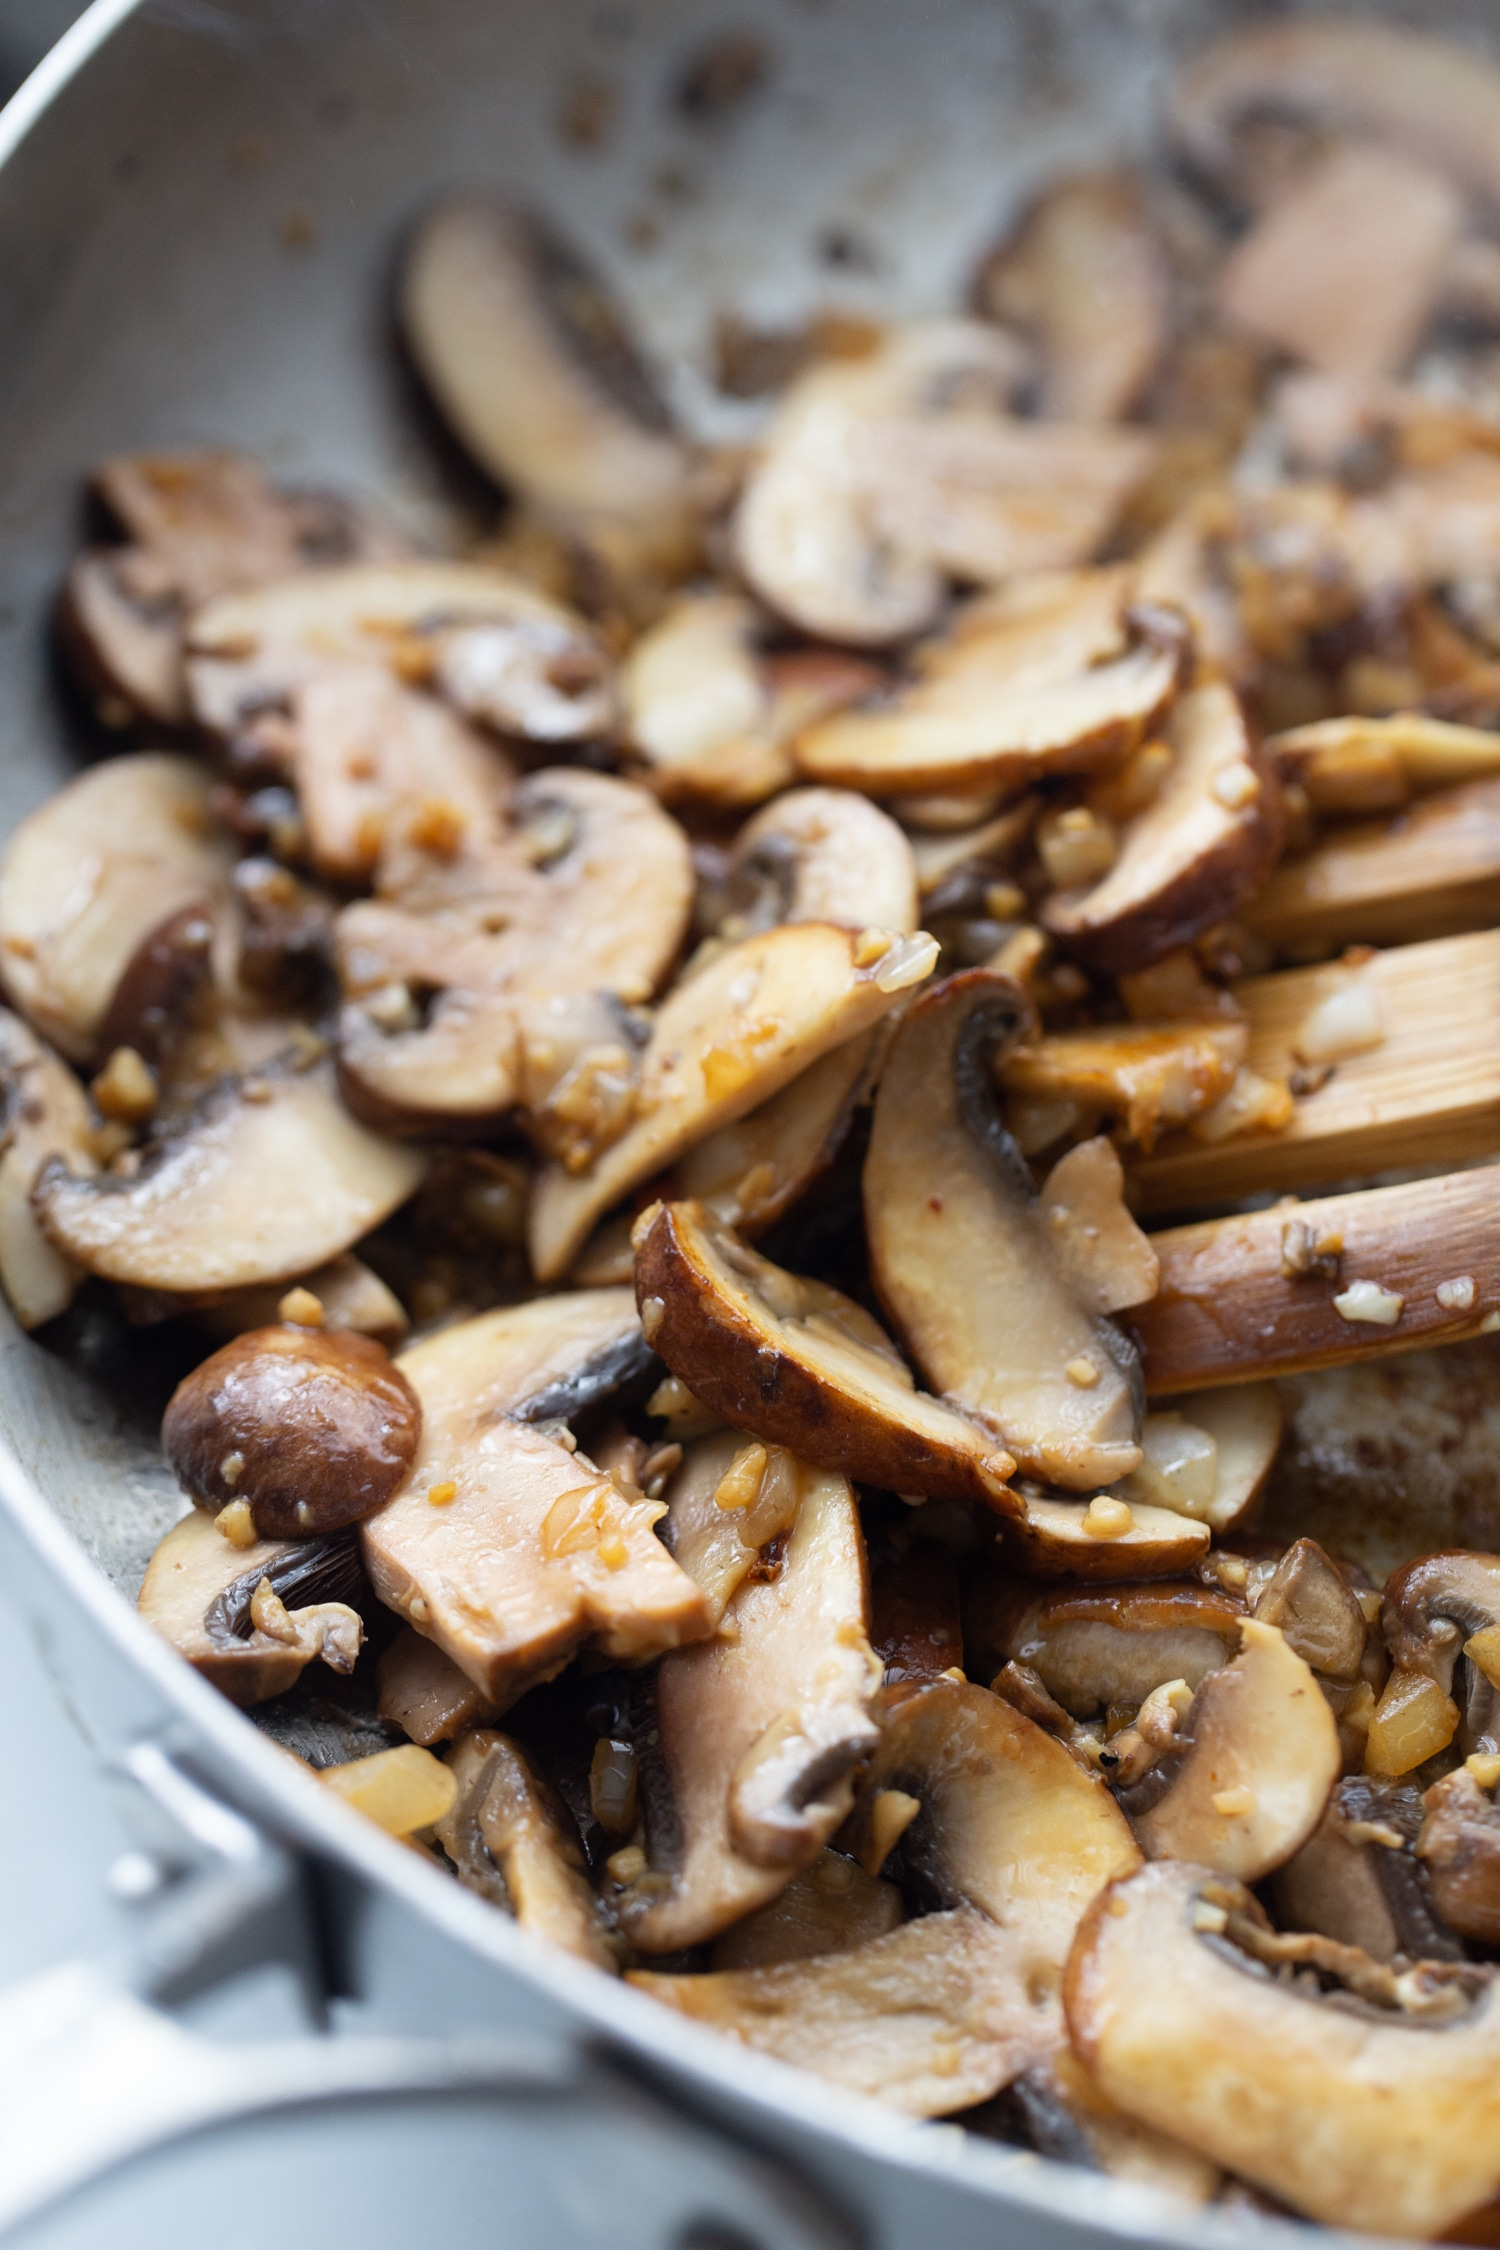 cremini mushrooms sauteeing in a skillet with onions and garlic